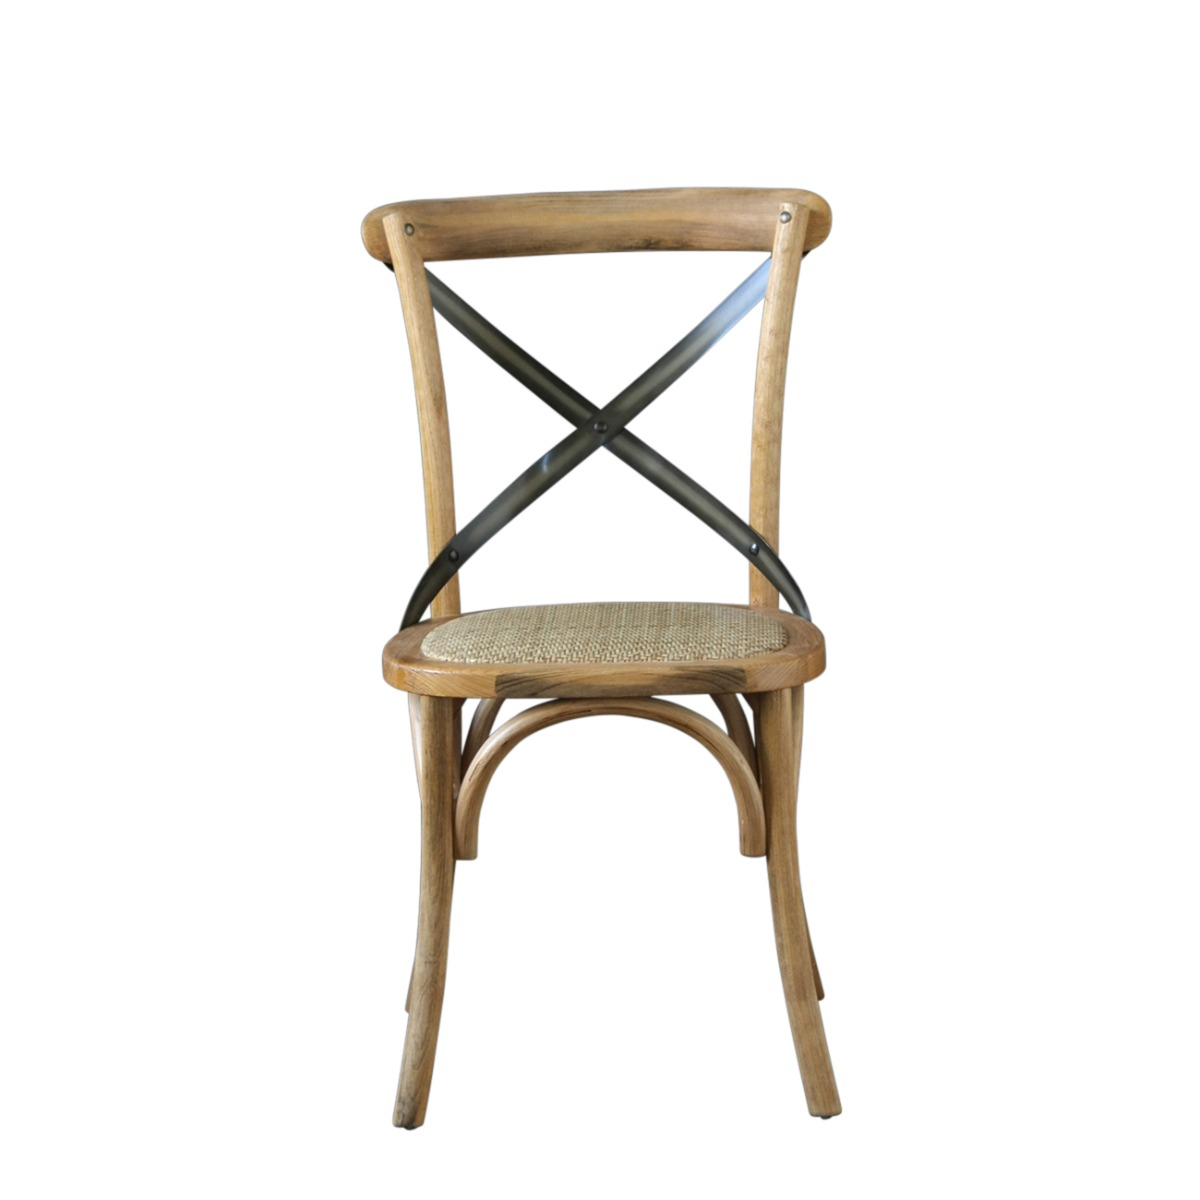 French Cross Back Bentwood Dining Chair, Café / Restaurant / Kitchen / Bistro, Metal Cross Back, Natural